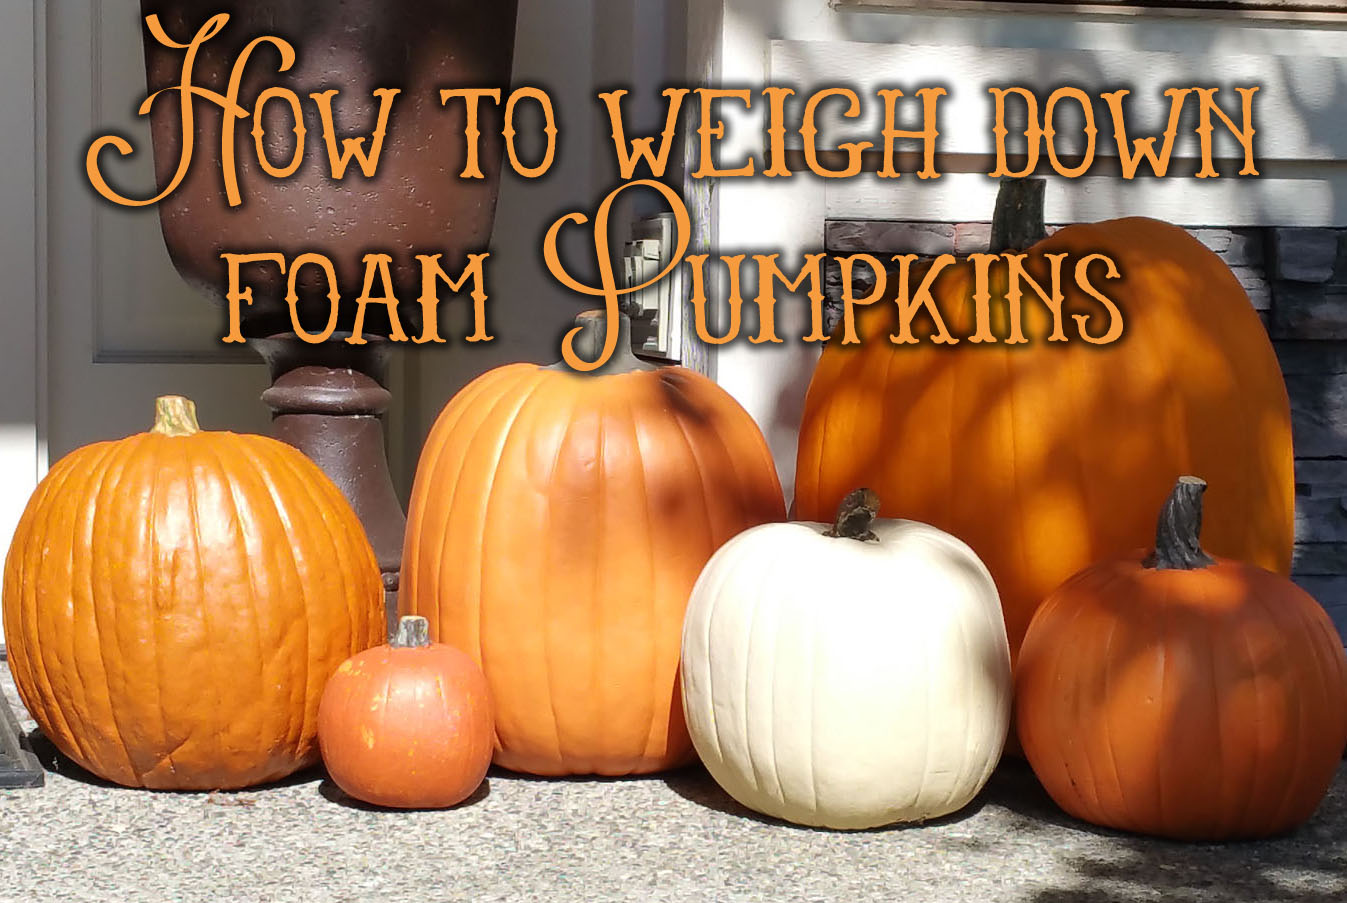 Amys crazy creative life: how to weigh down foam pumpkins